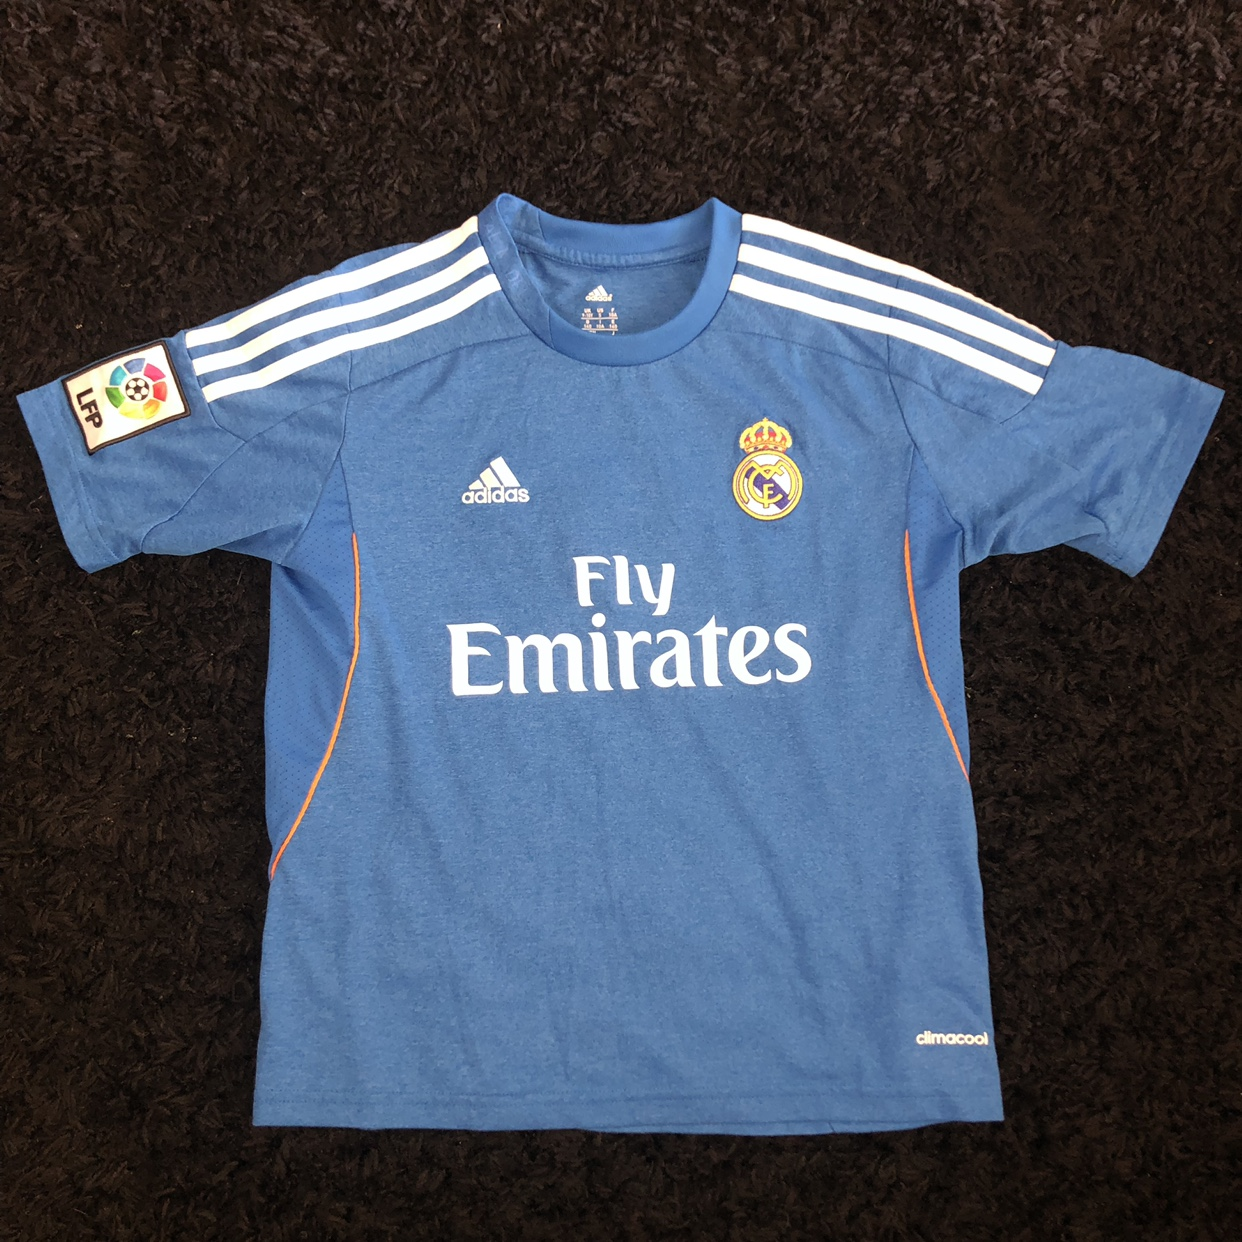 huge discount b55af fd9ea Youth Size Small Fly Emirates Cristiano Ronaldo... - Depop